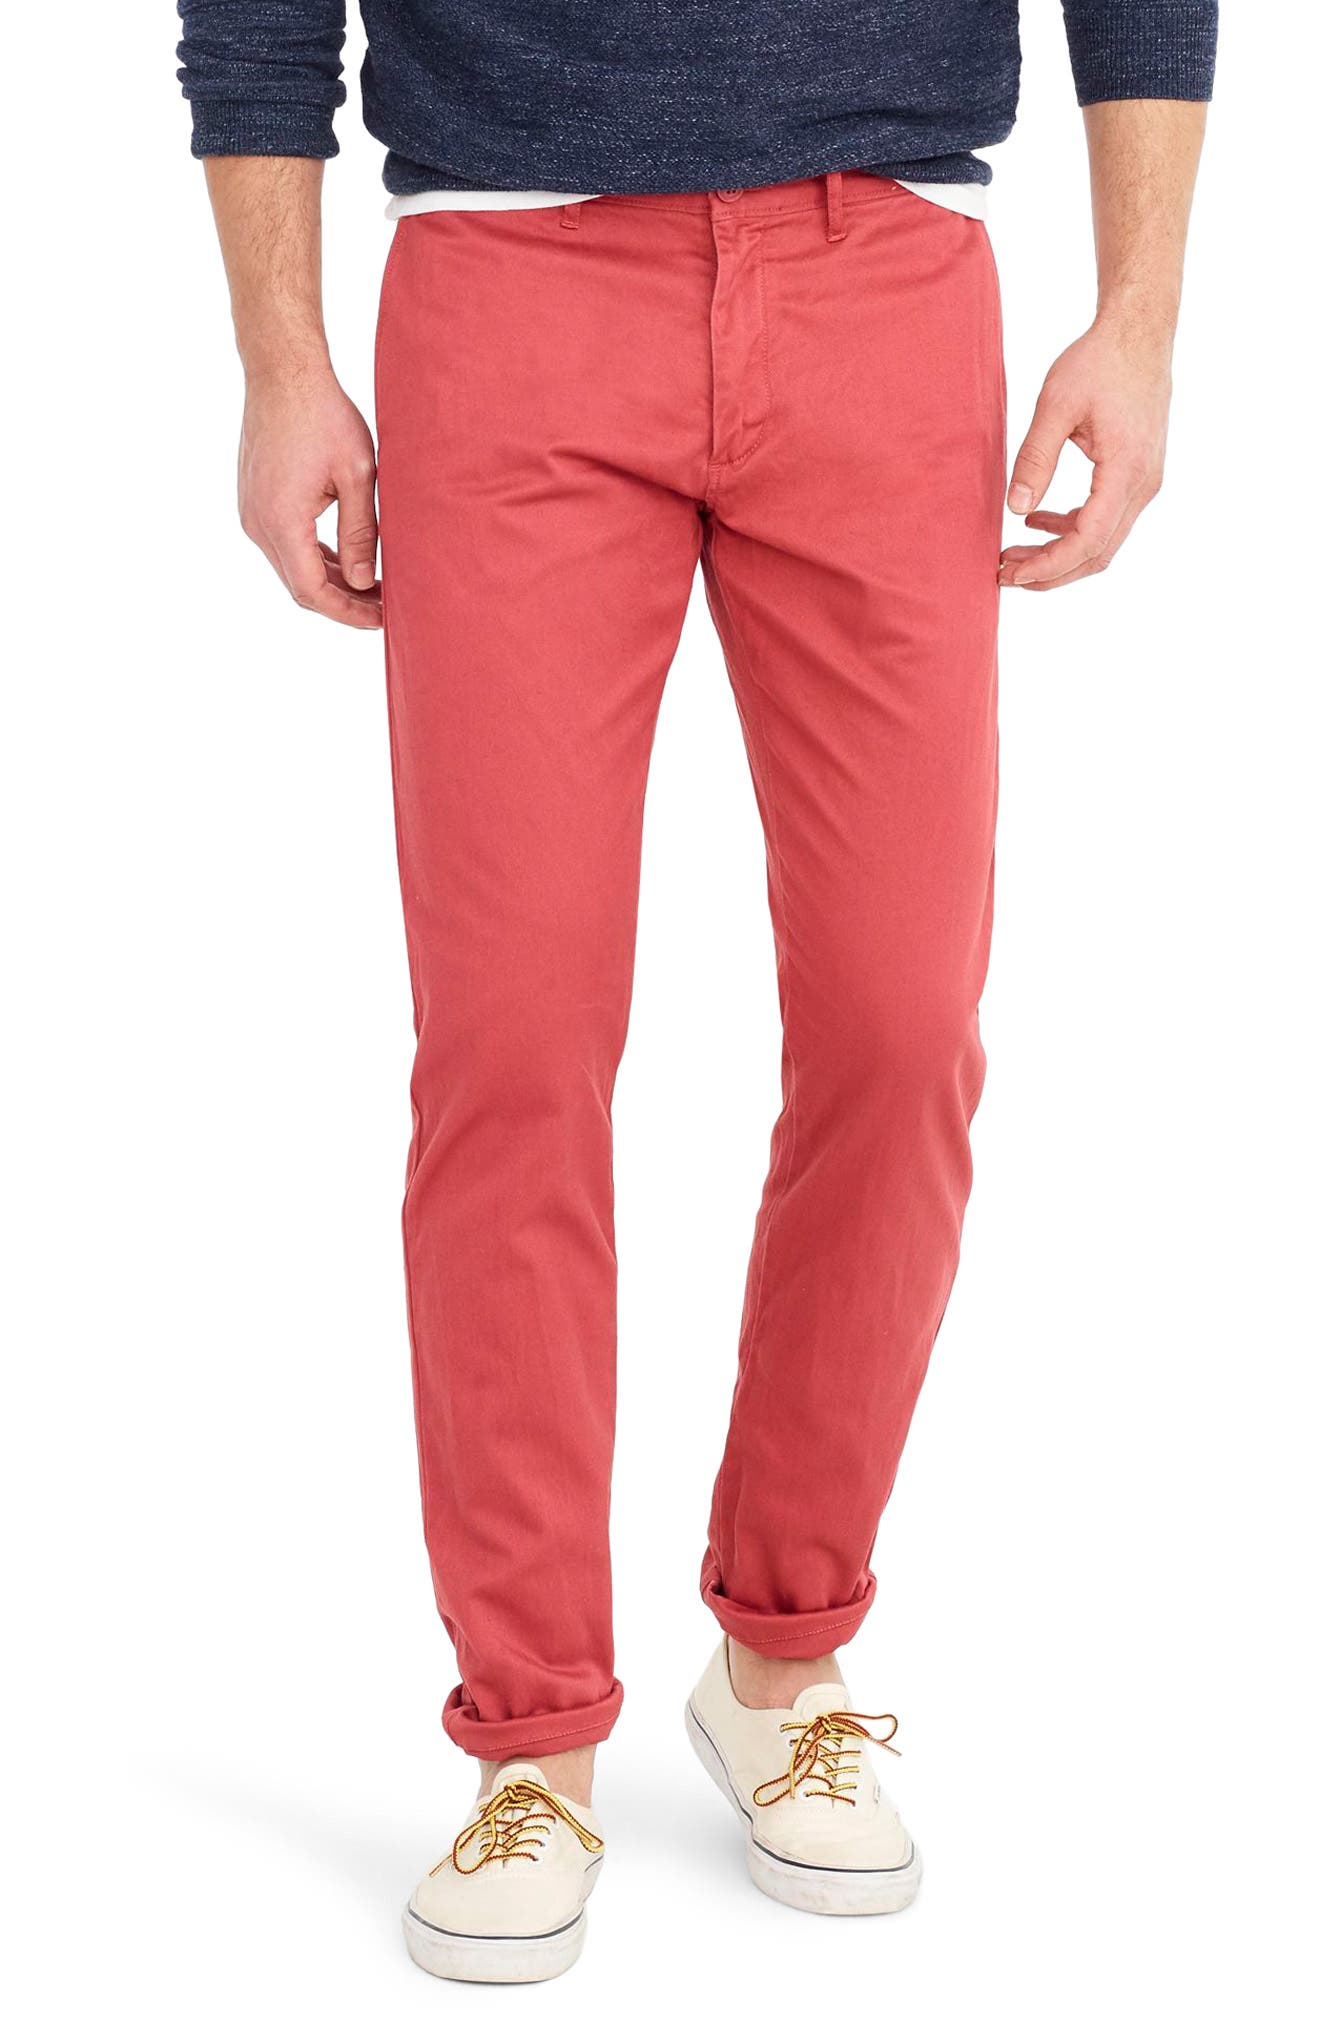 484 Slim Fit Stretch Chino Pants,                             Main thumbnail 11, color,